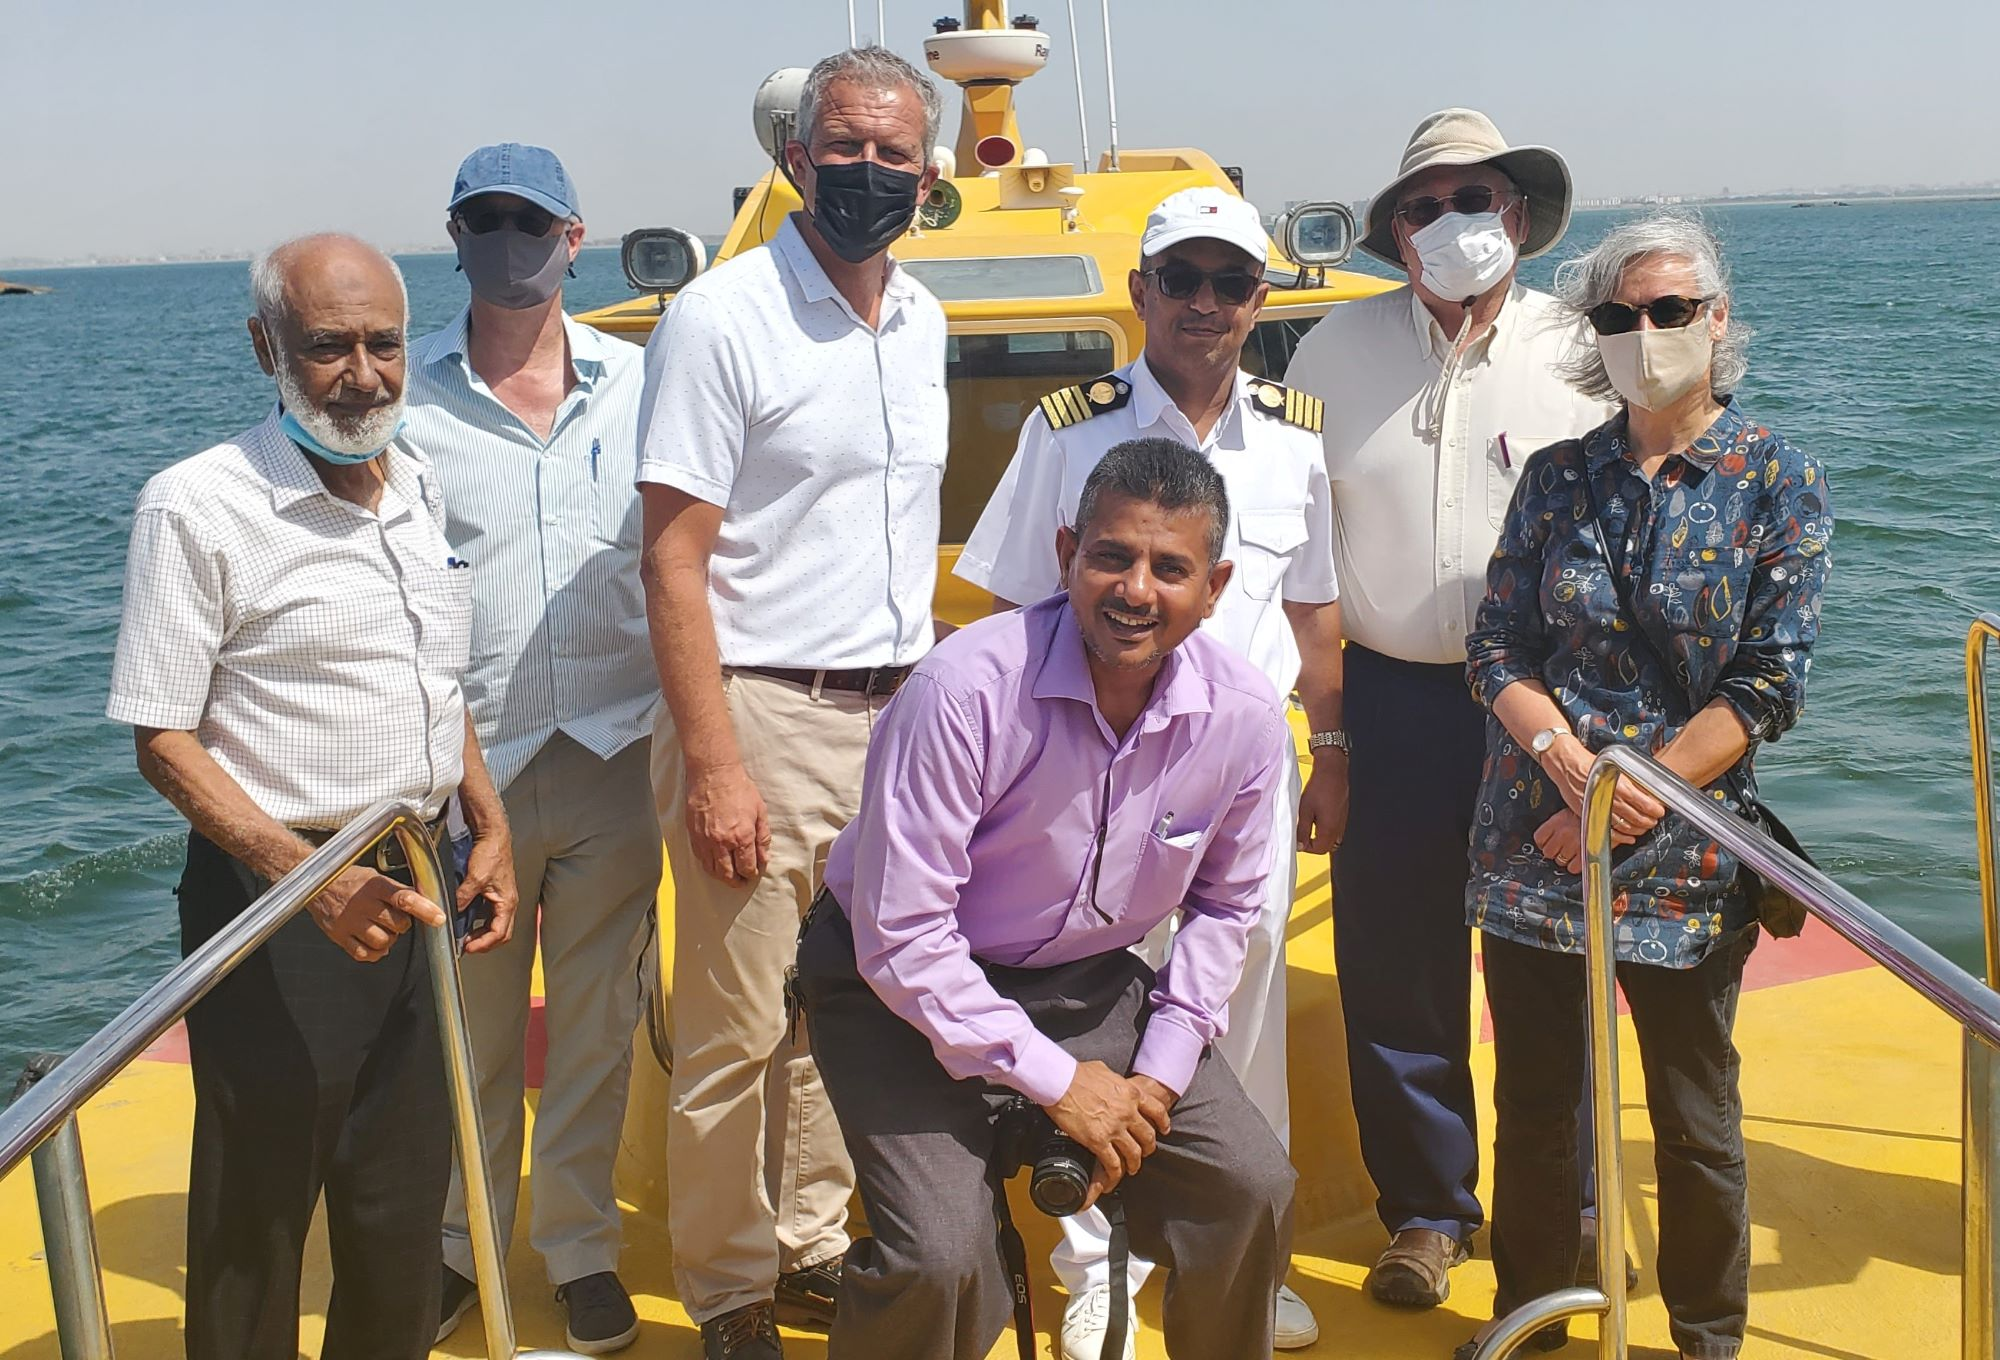 In 1885 started its activities in Aden Port .. The Mission to Seafarers Visits the Port